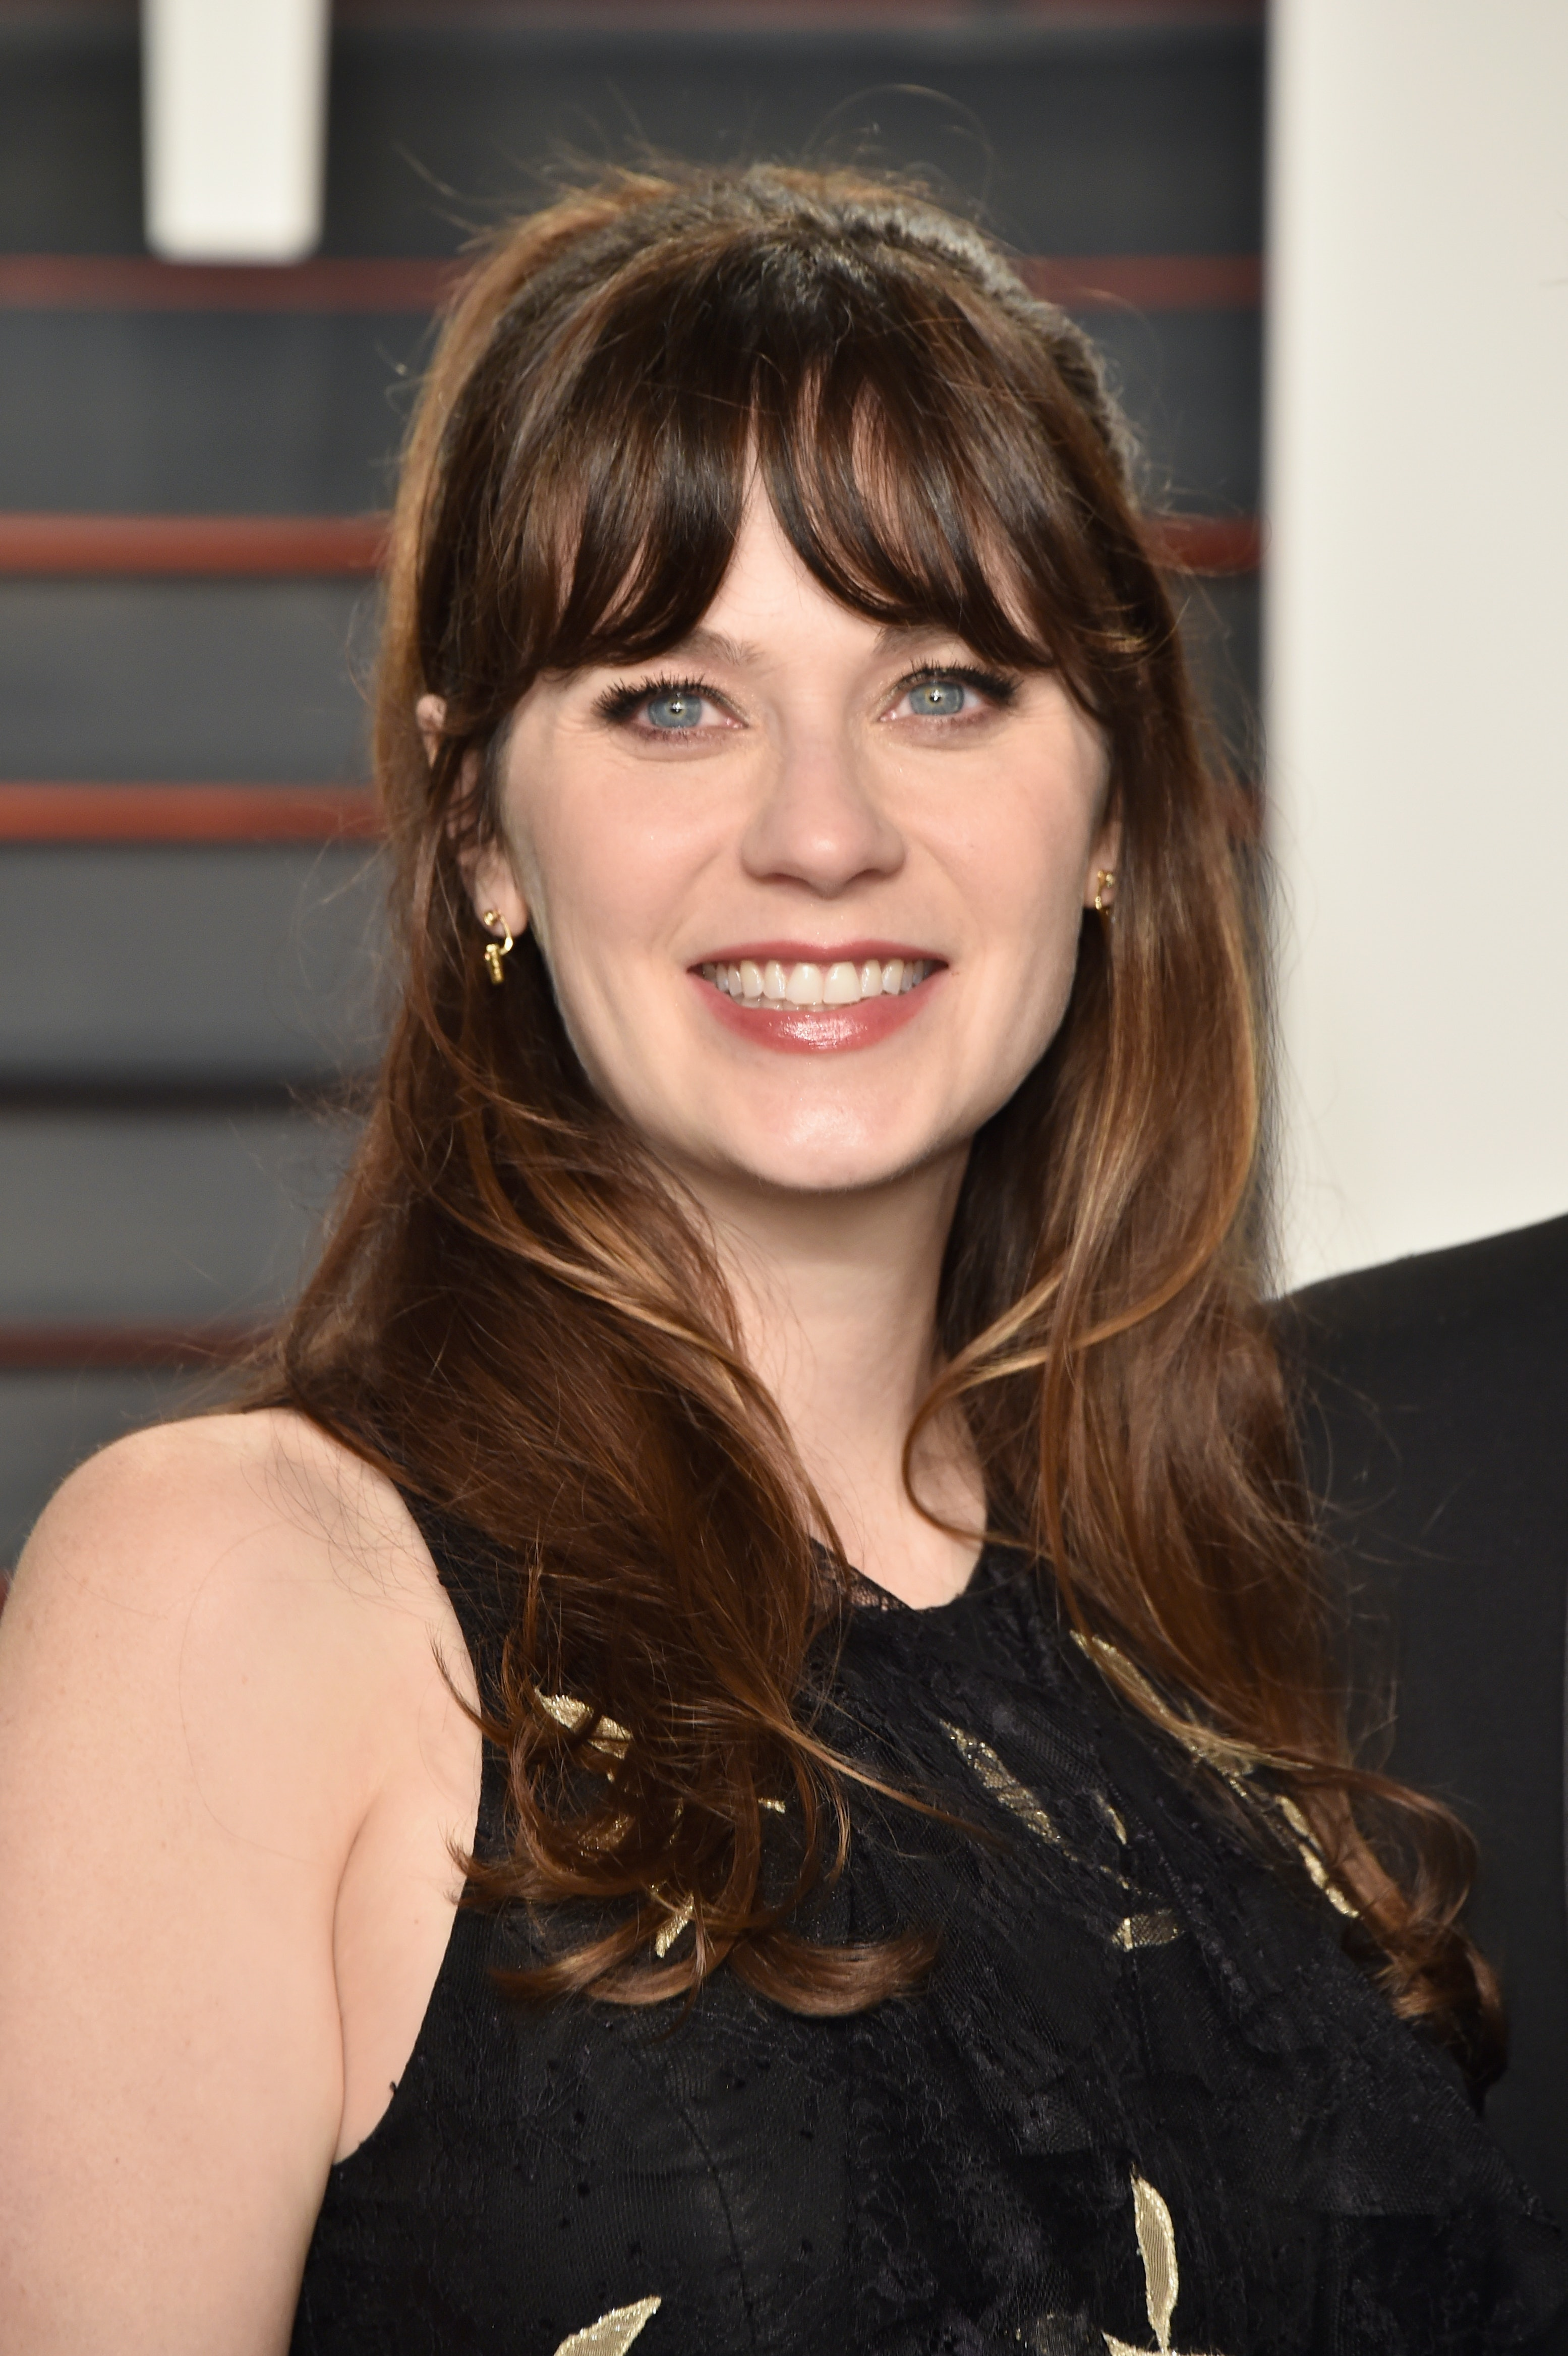 Zooey Deschanel S New Short Hair Makes Her Look Totally Different